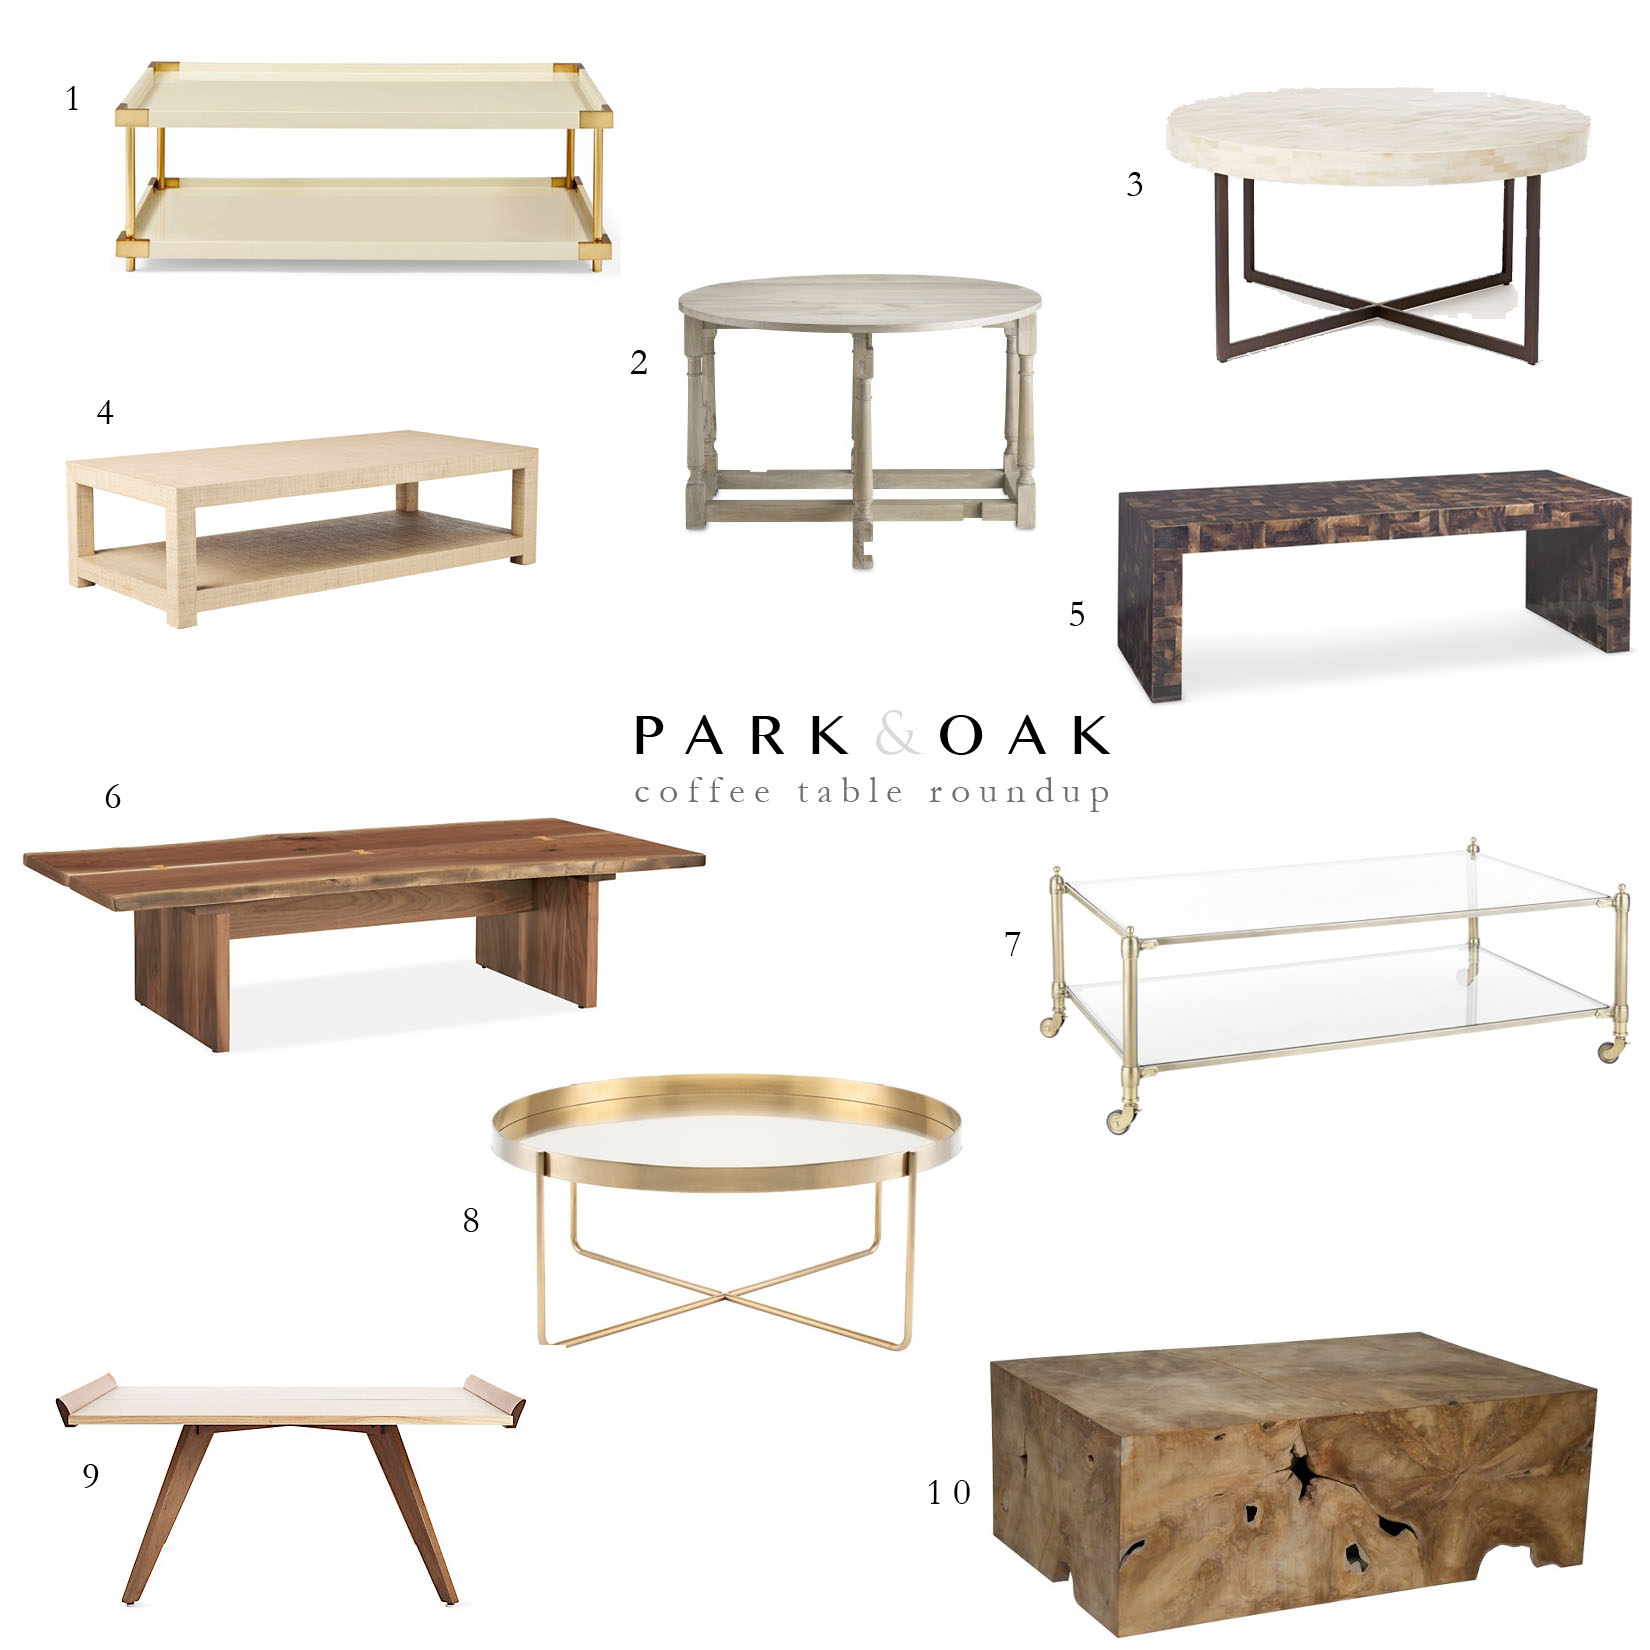 coffee table round up park and oak interior design